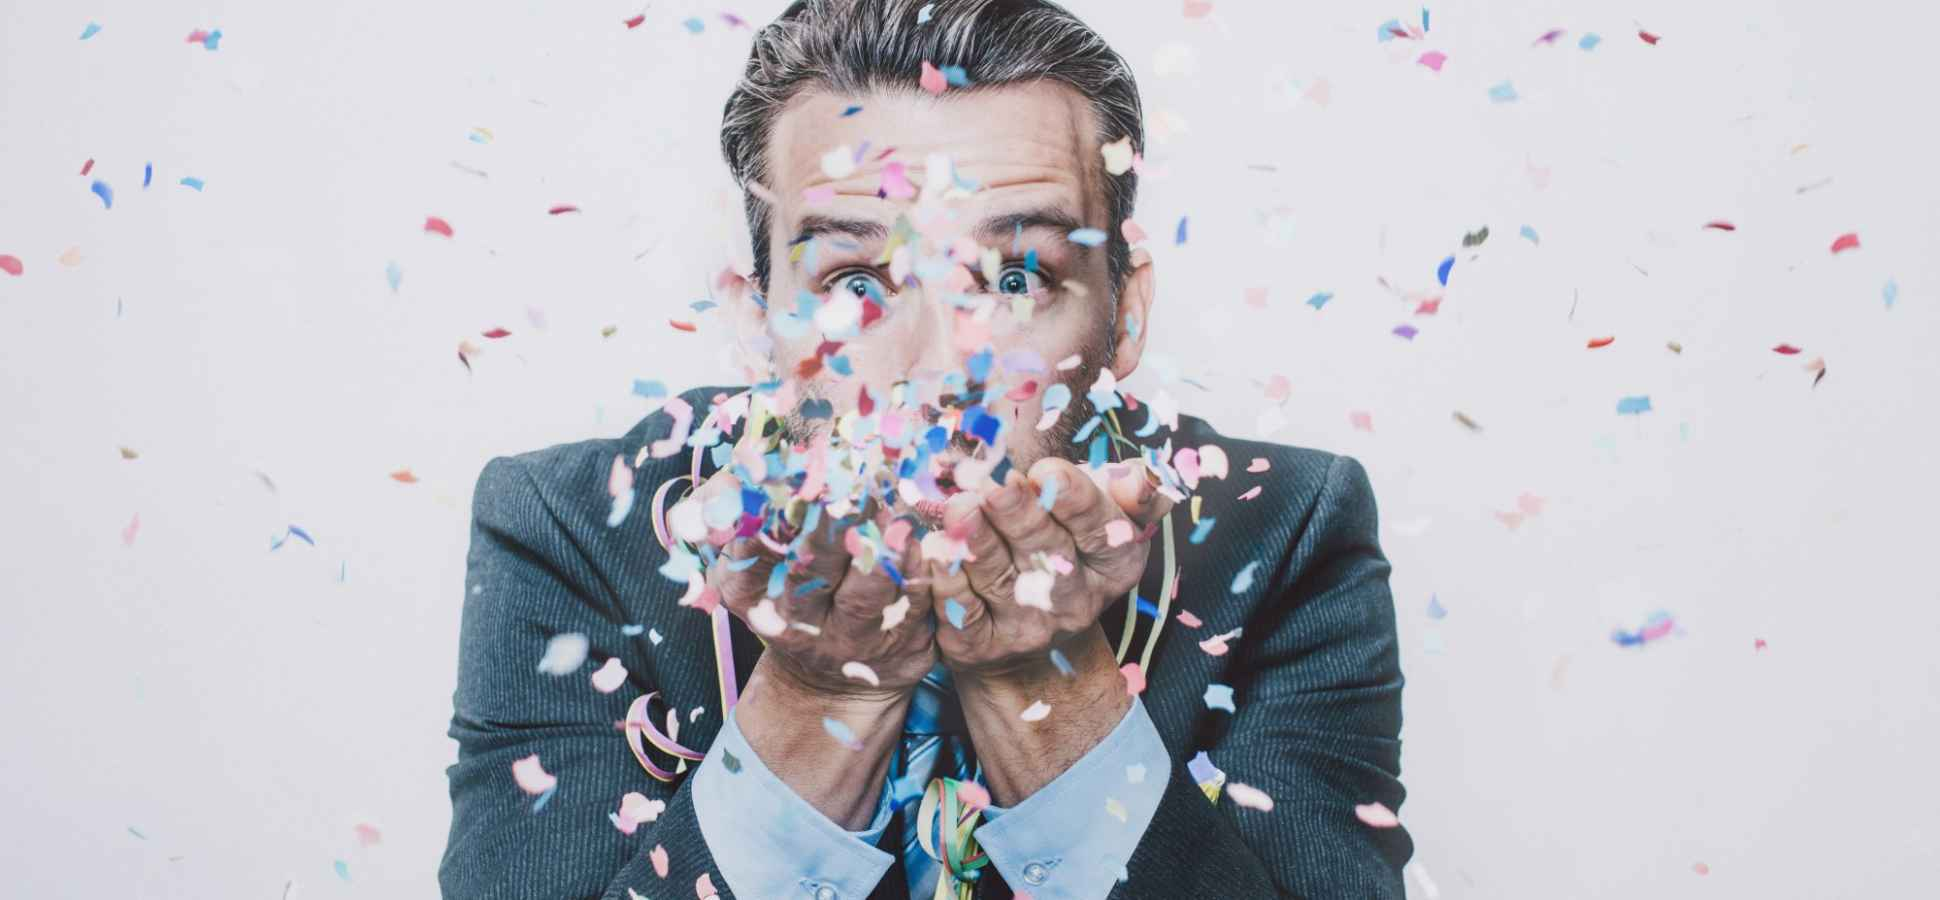 5 Solutions That Can Boost Employee Happiness